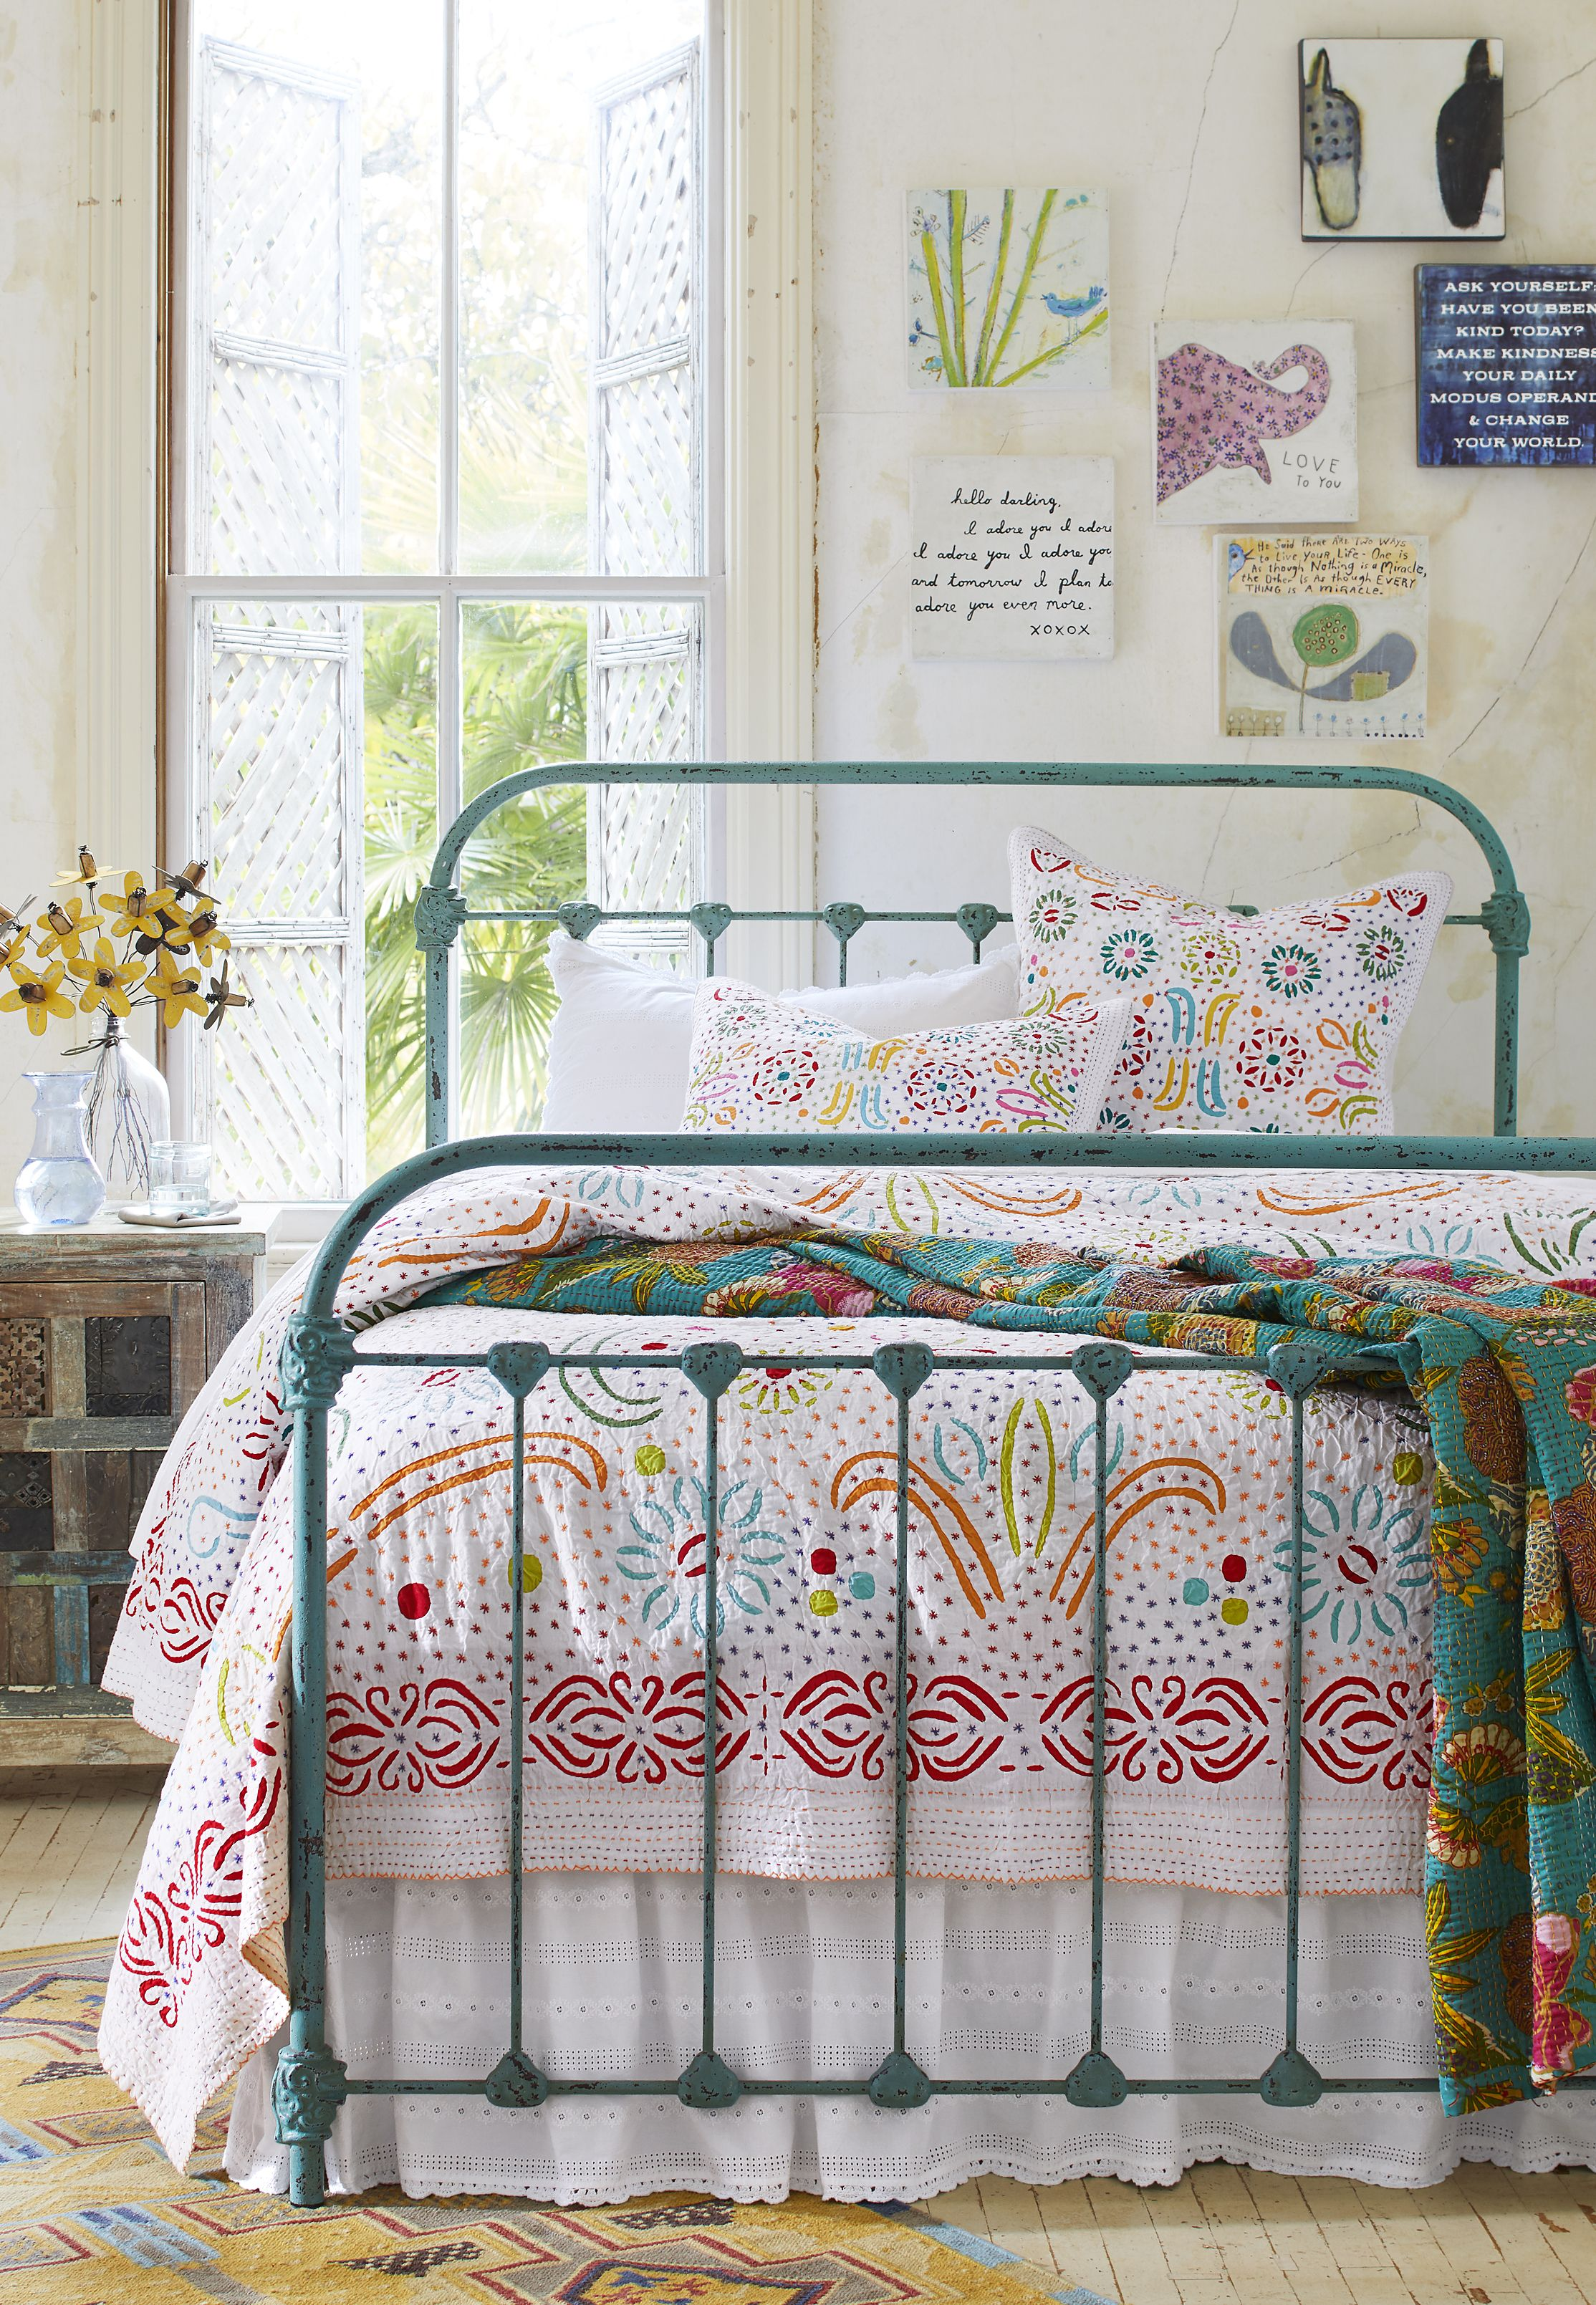 Sky Sea Bed Welded Iron Turquoise Bed Iron Bed Turquoise